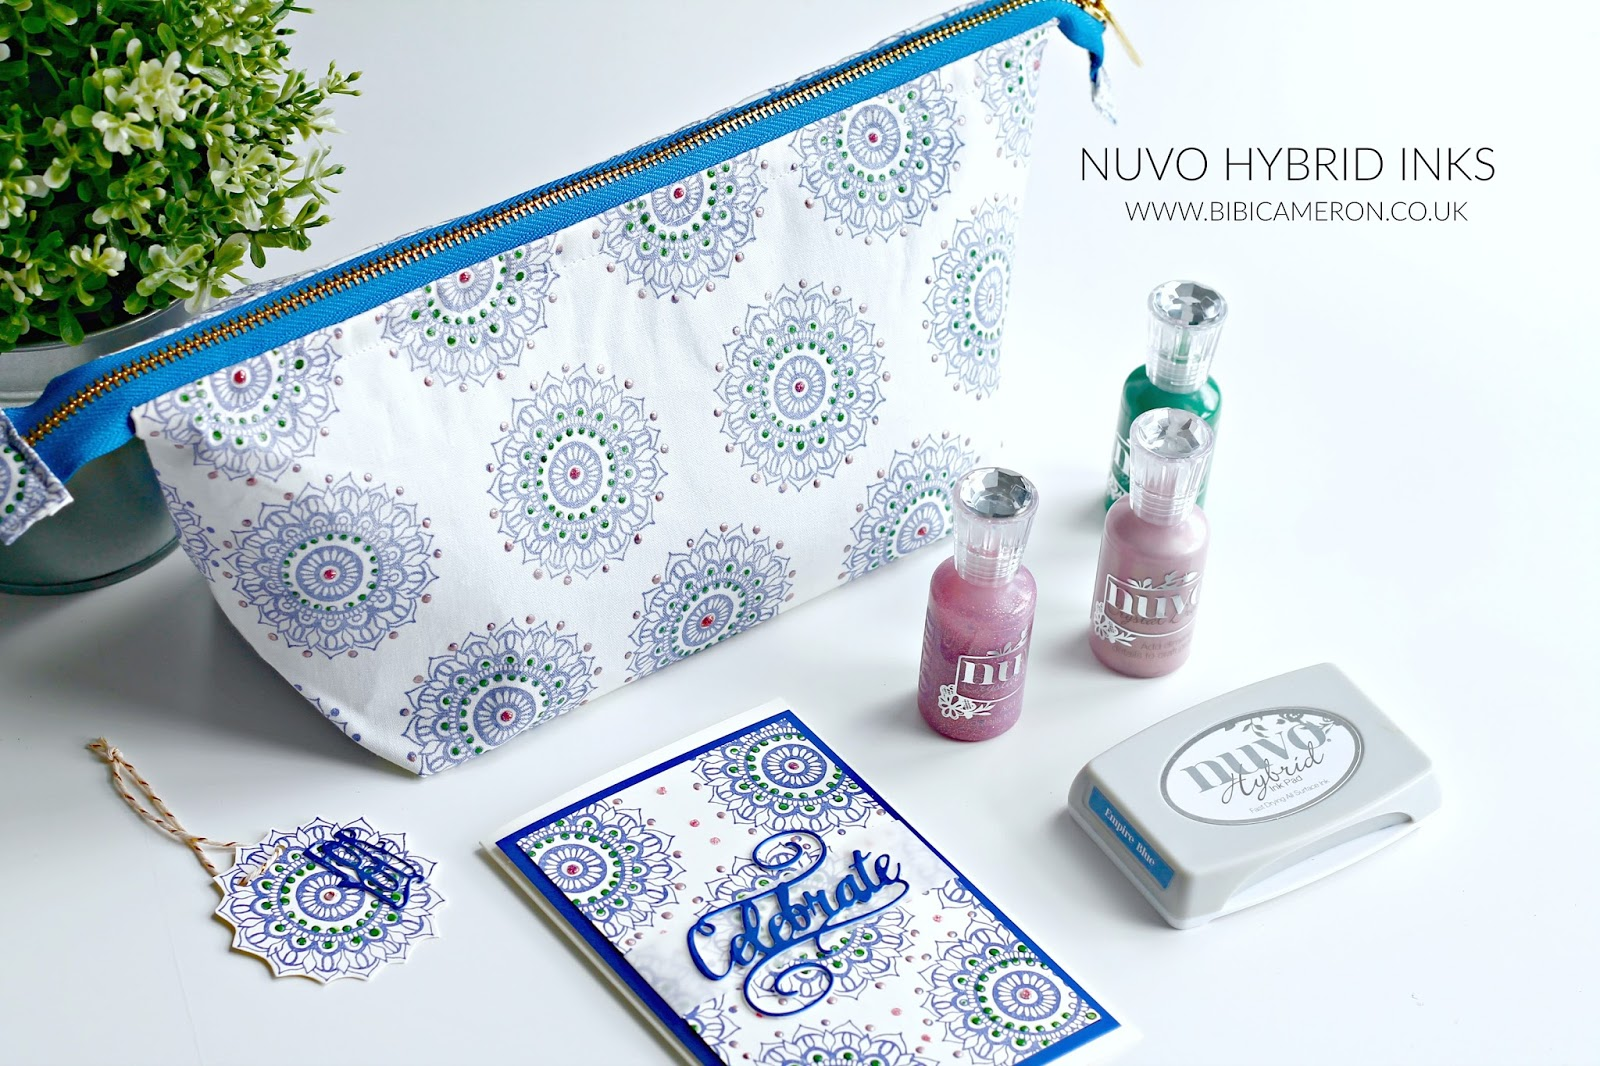 Stamping on Fabric with  Nuvo Hybrid Inks